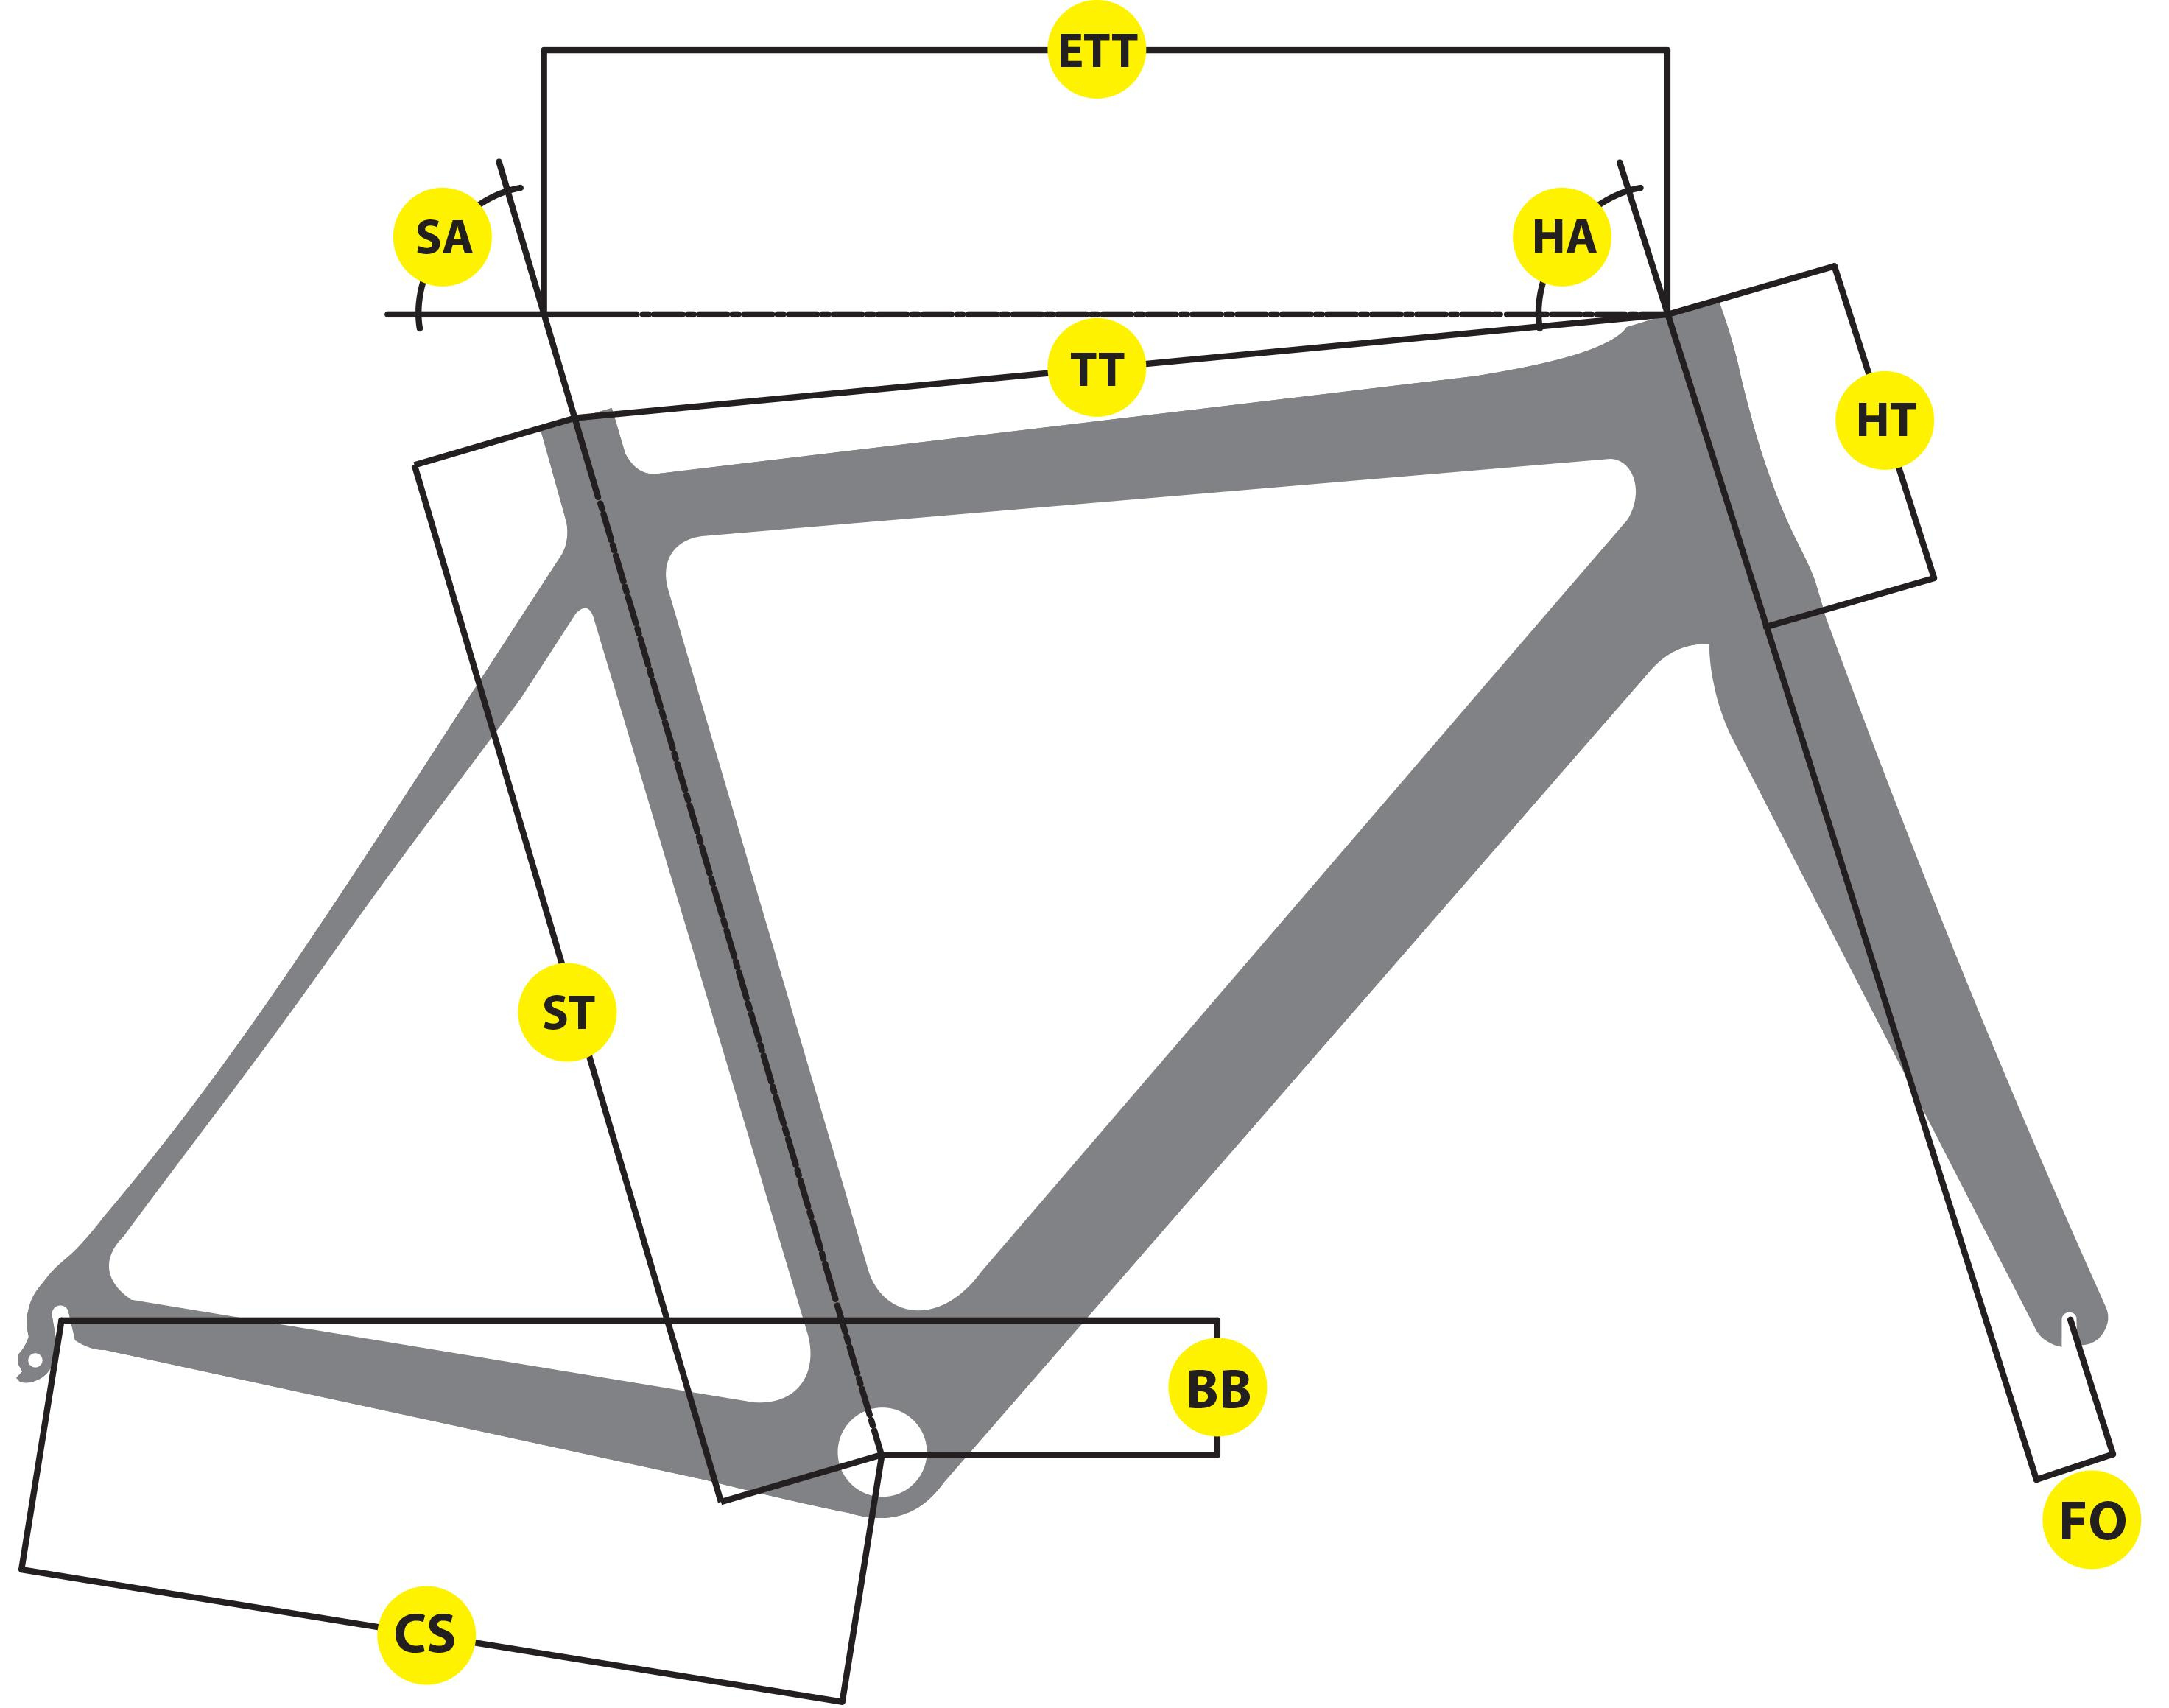 New to cycling advice required on frame size and which bike.